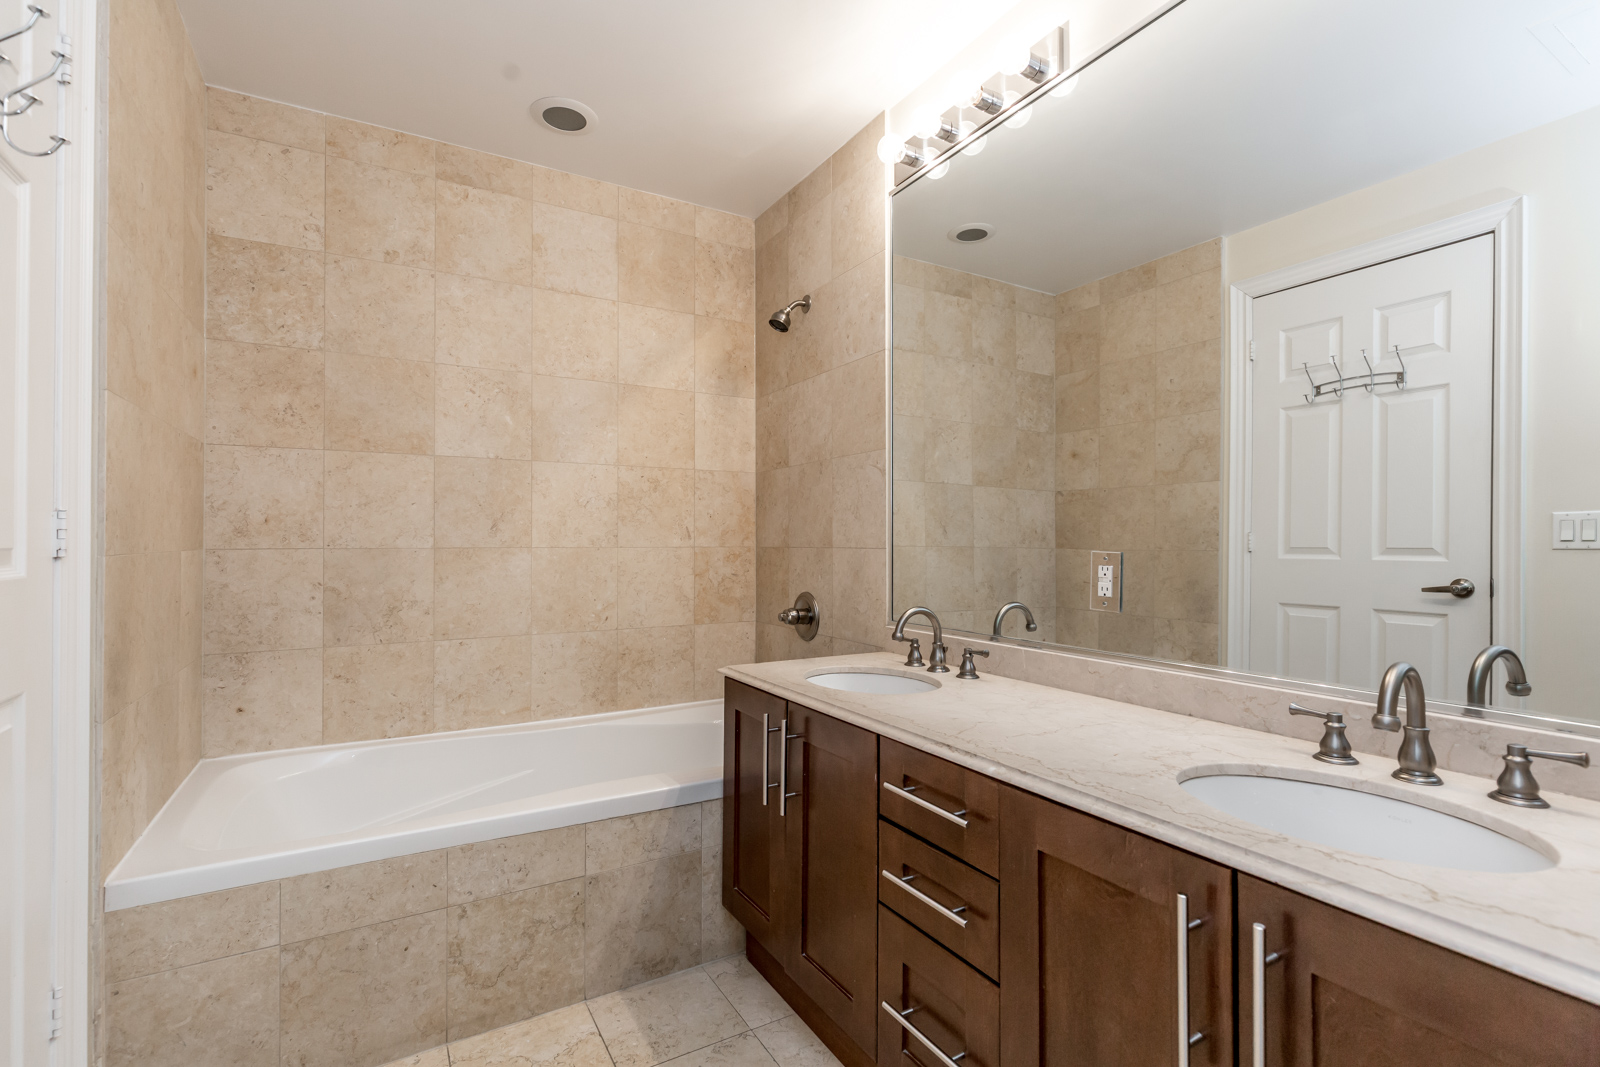 Photo of master bathroom with large mirror, 2 sinks, and bathtub.